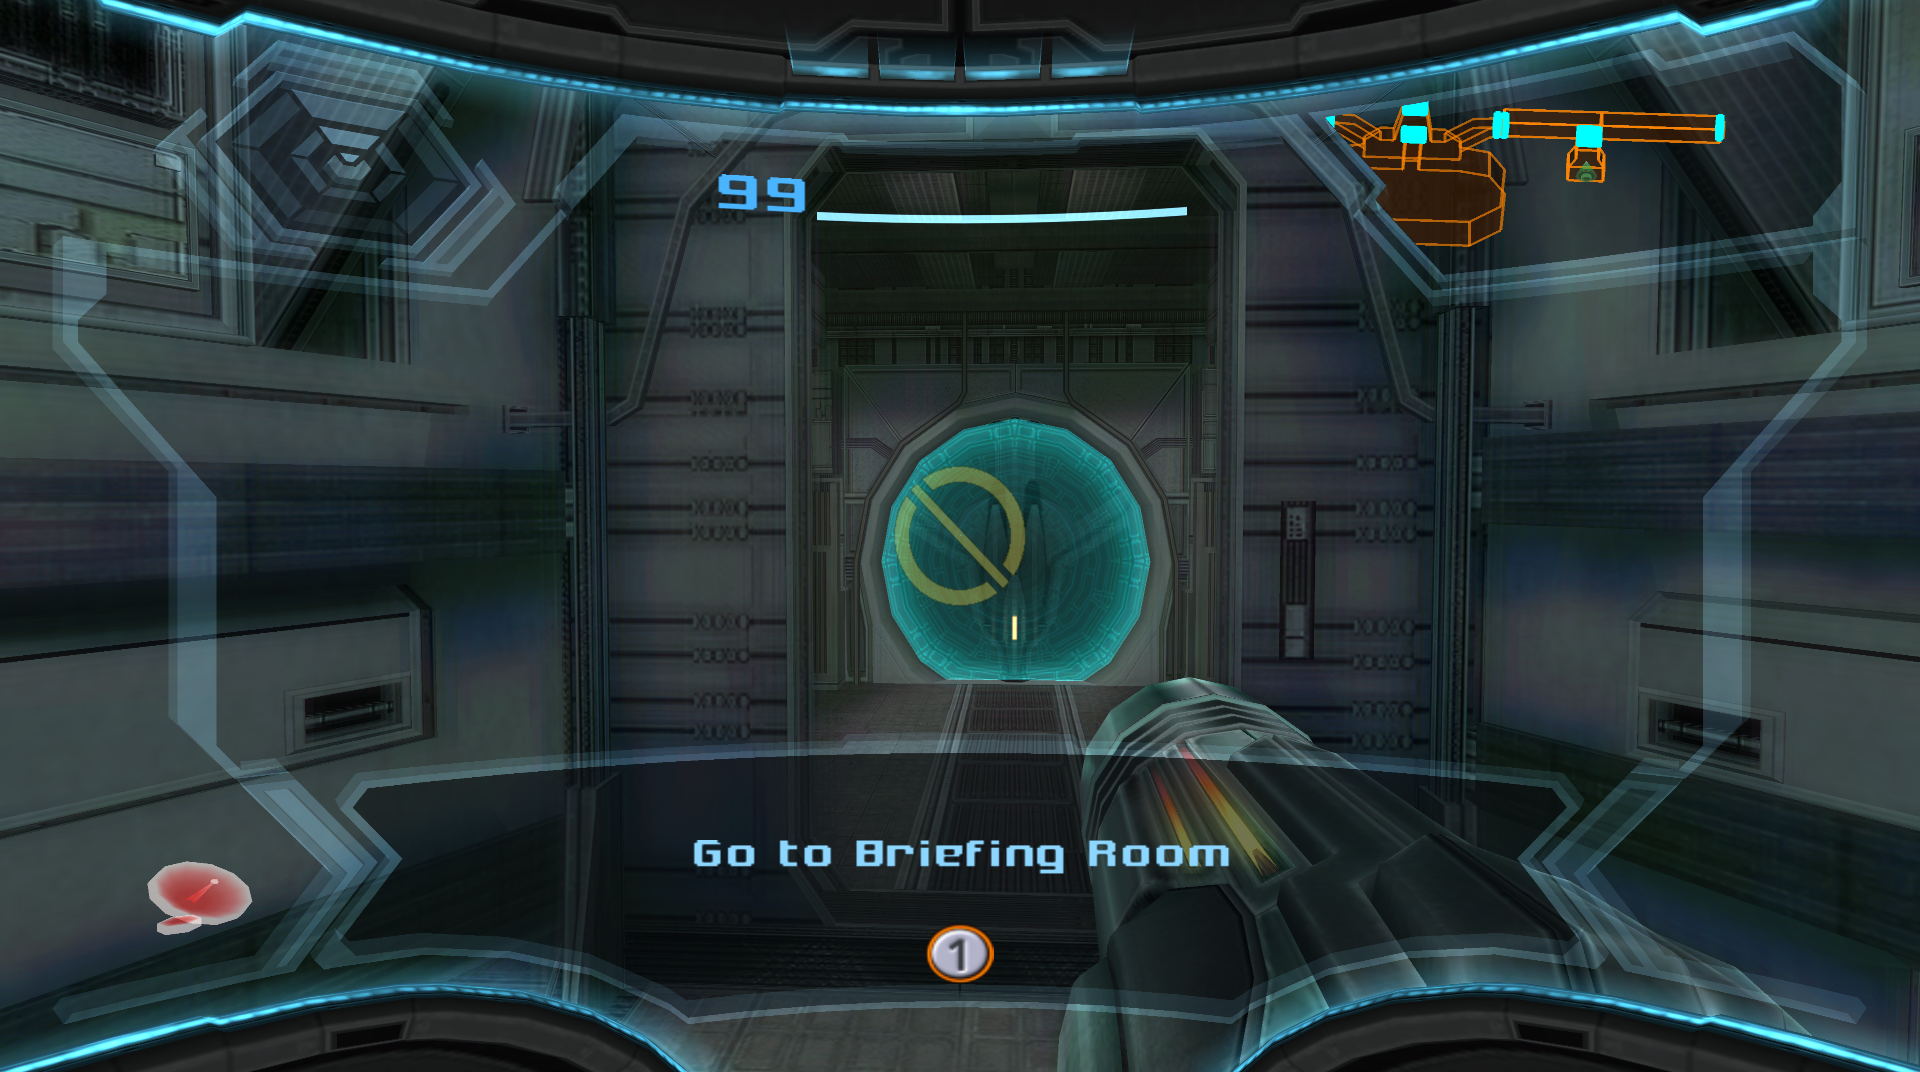 Emulator Issues #9701: Metroid Prime Trilogy (MP3): Direct3D